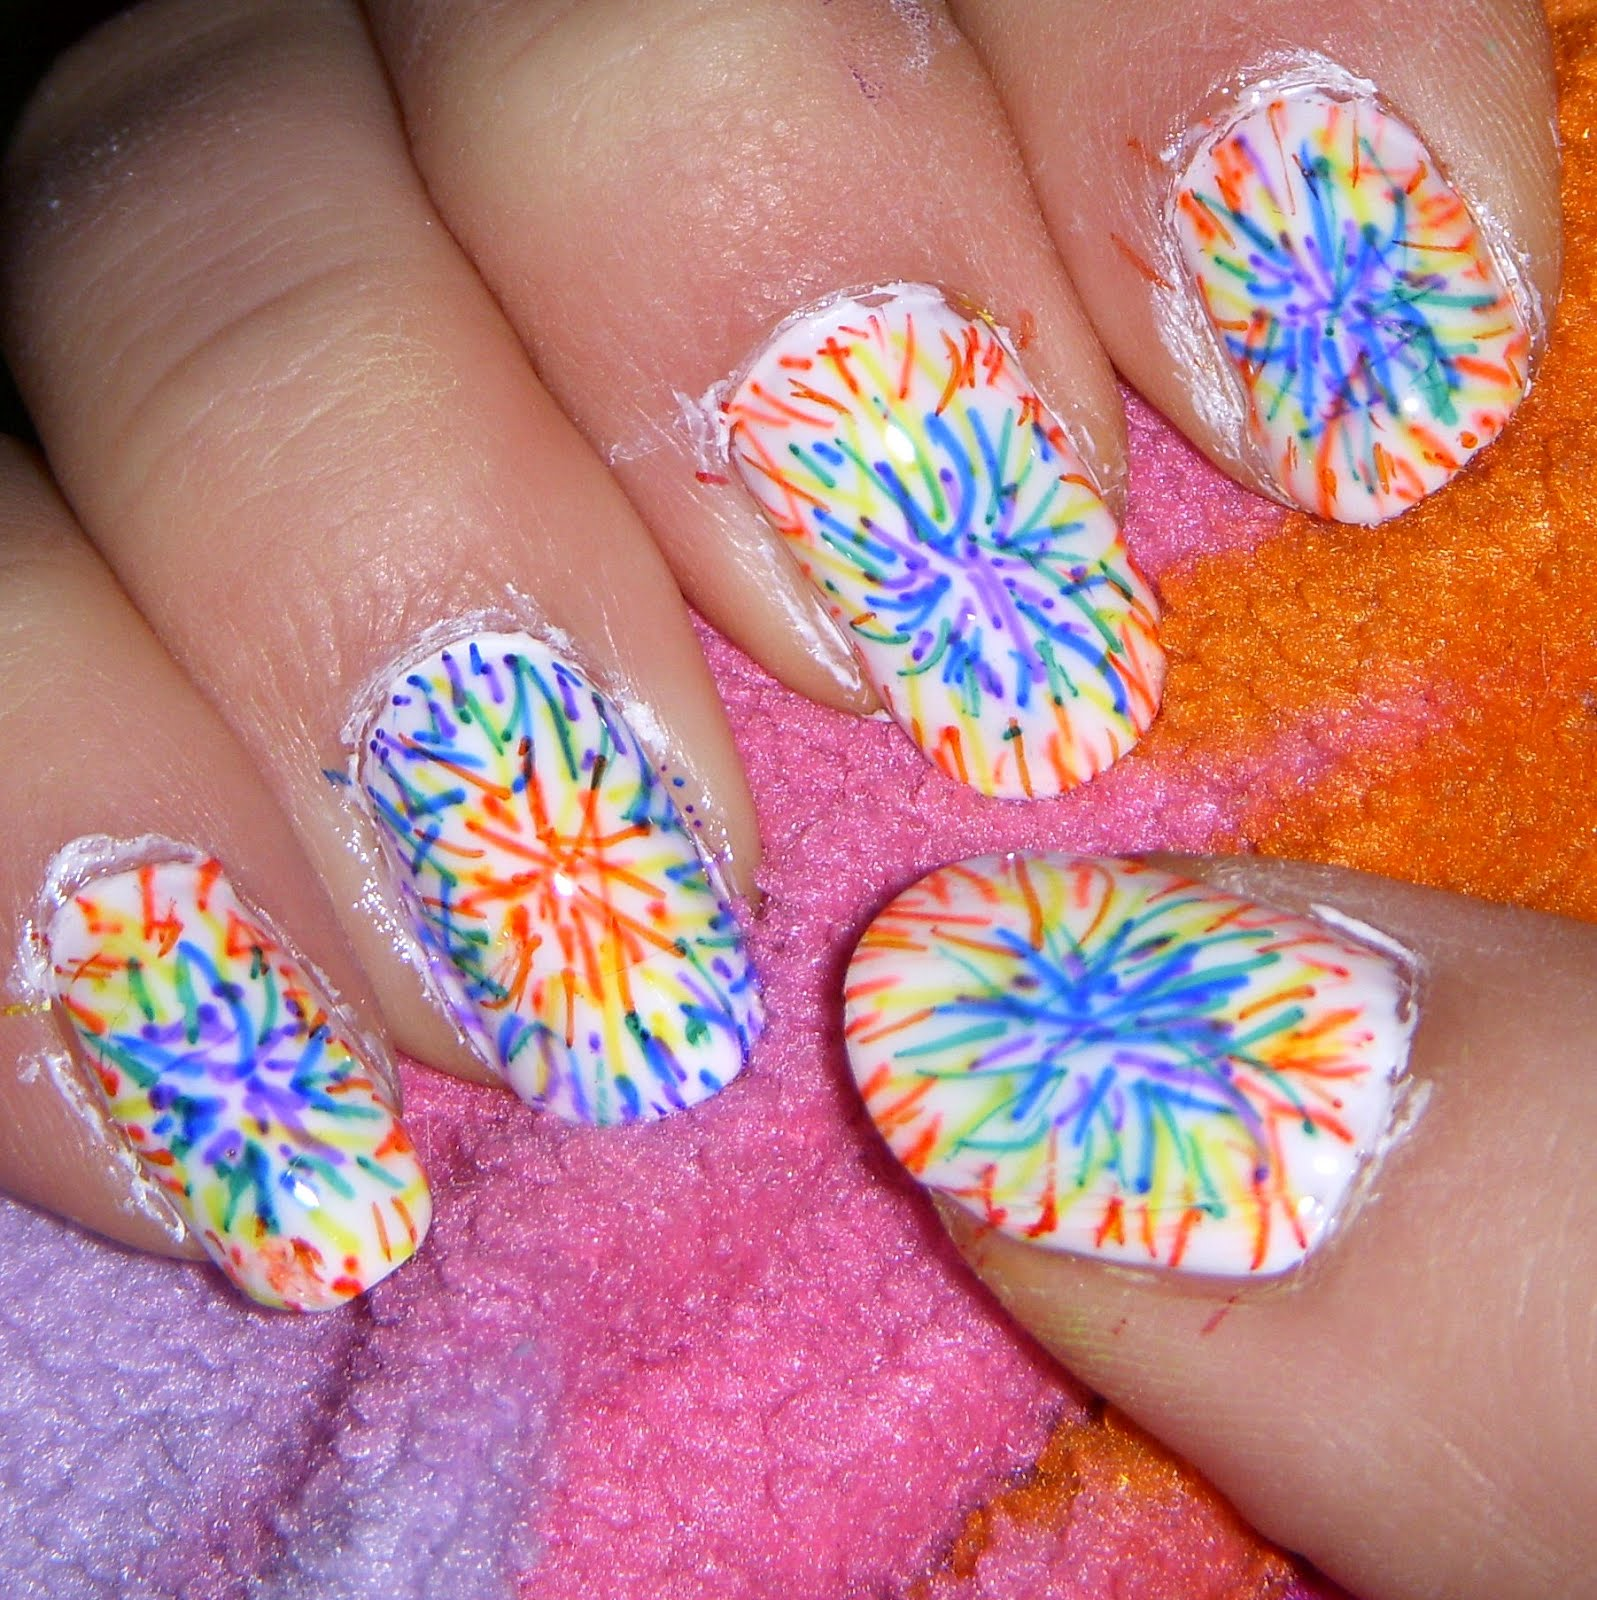 Quixiis nails 030912 cheater tie dye nails 030912 cheater tie dye nails prinsesfo Image collections